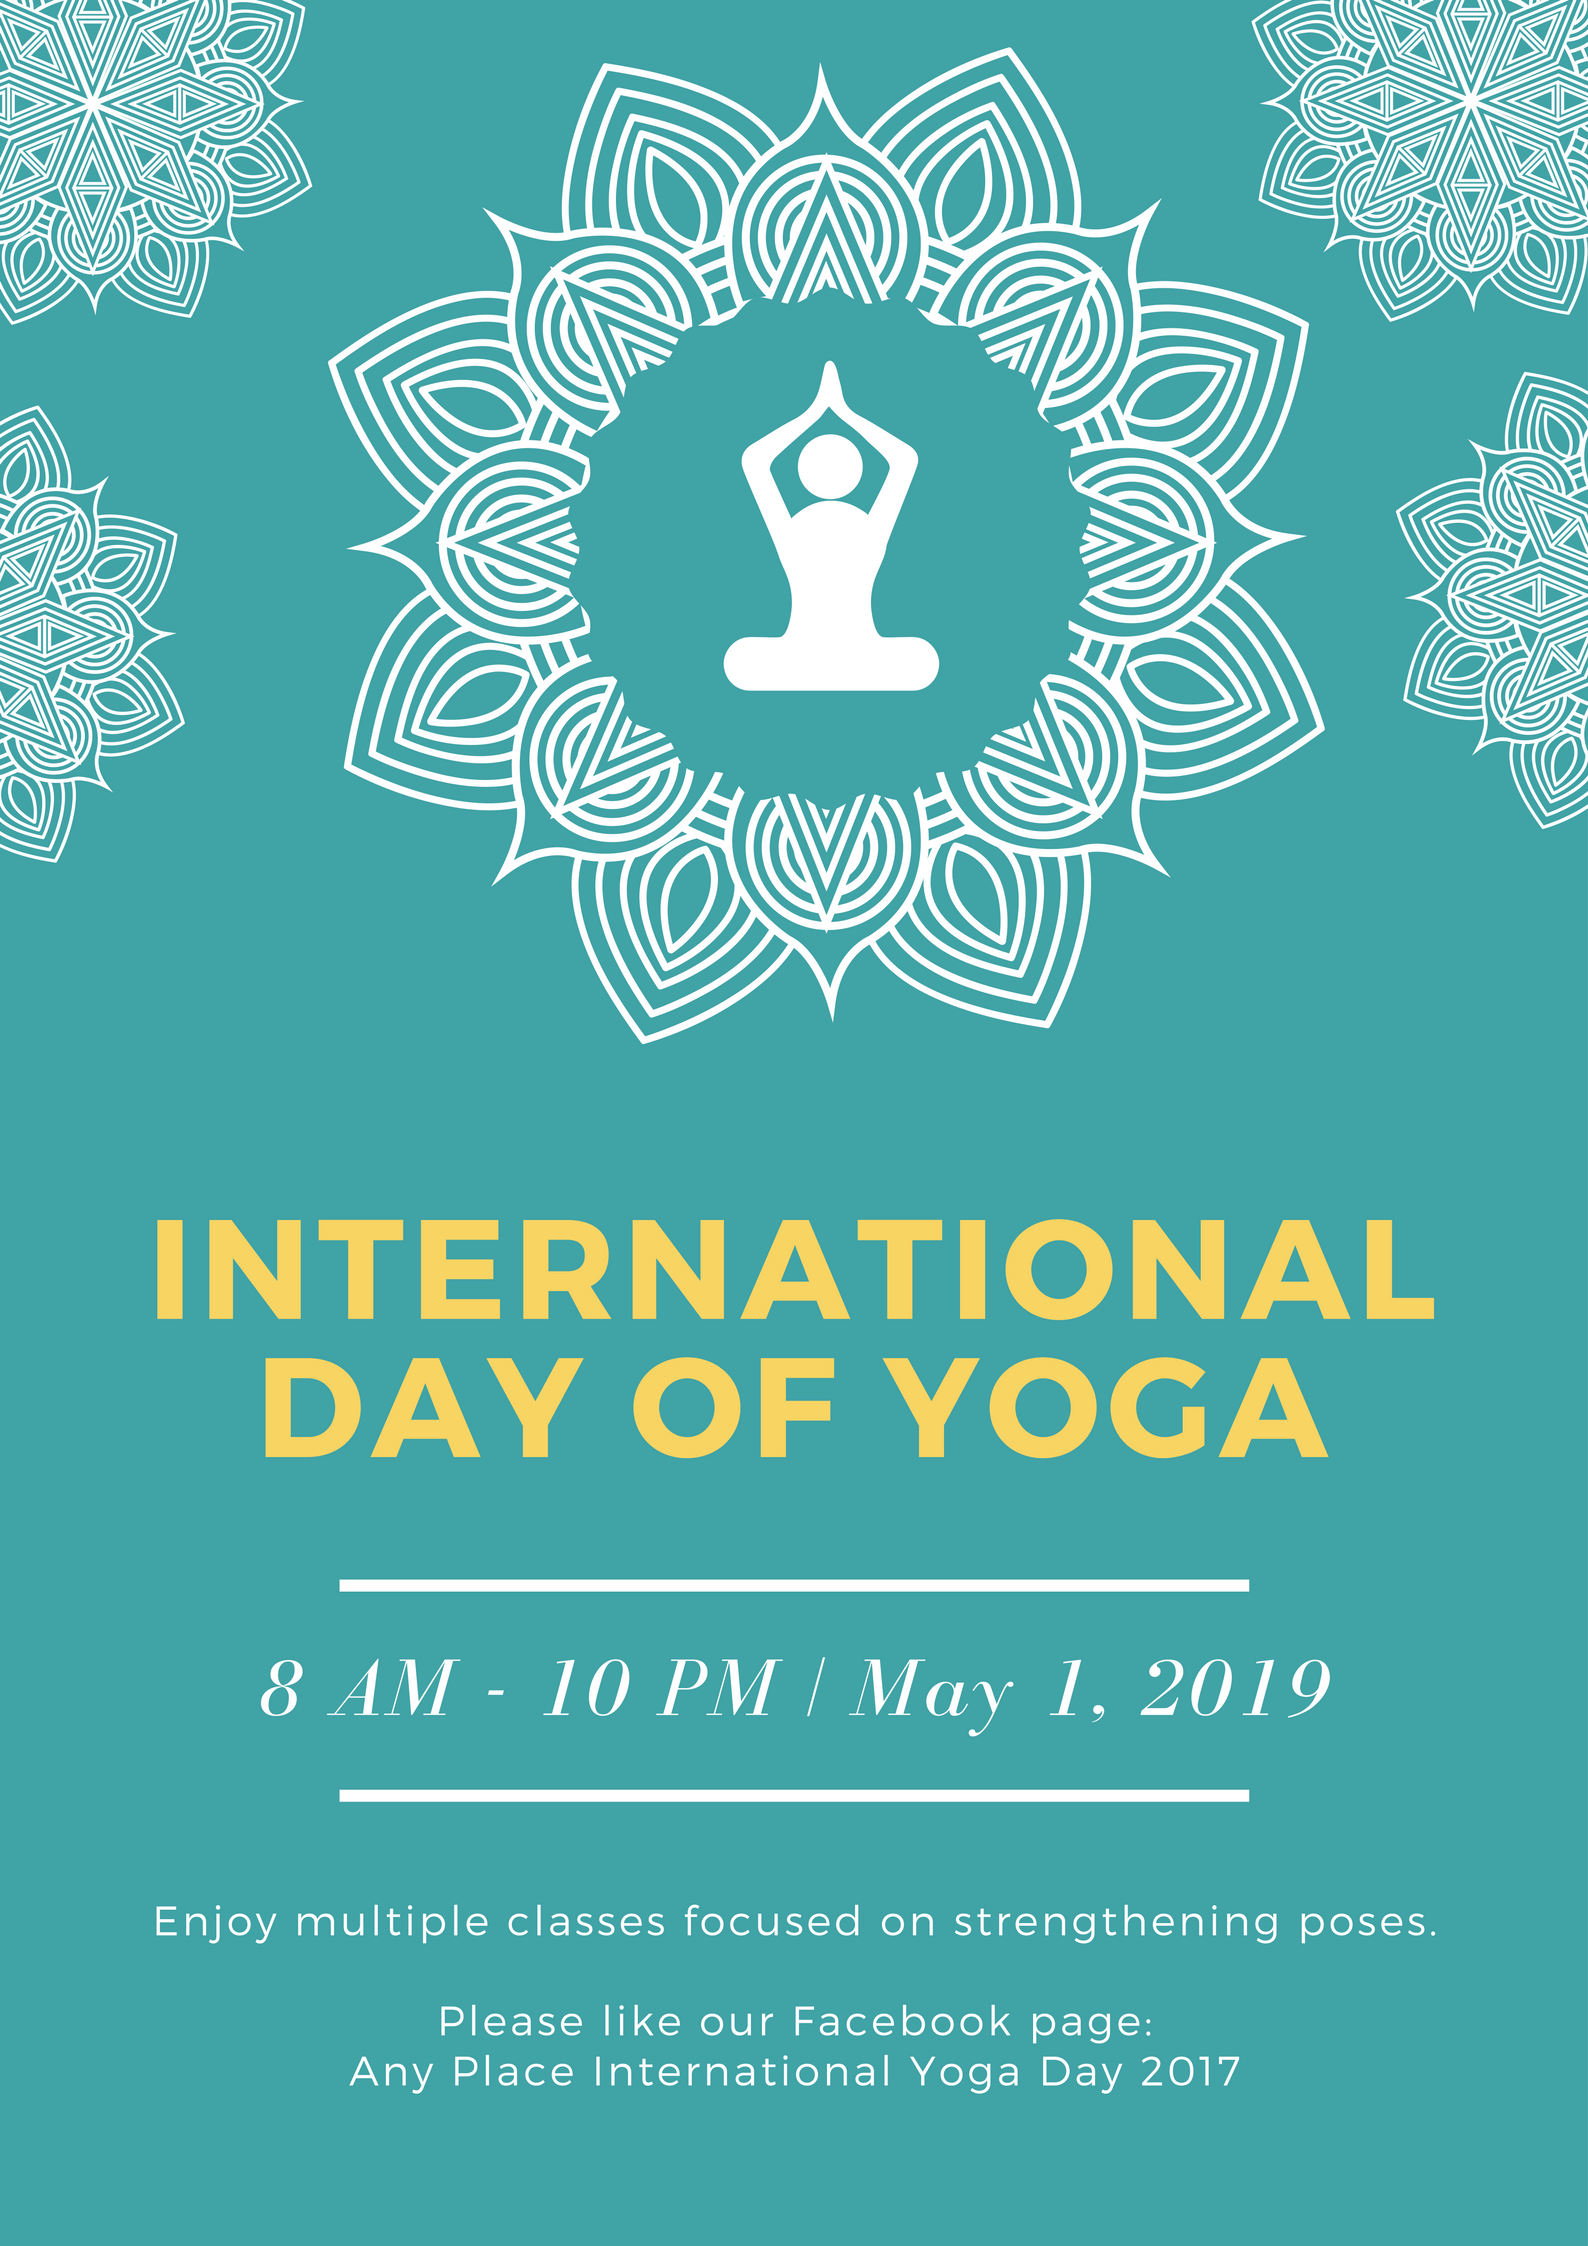 Free International Day Of Yoga Posters Design A Custom Poster In Canva